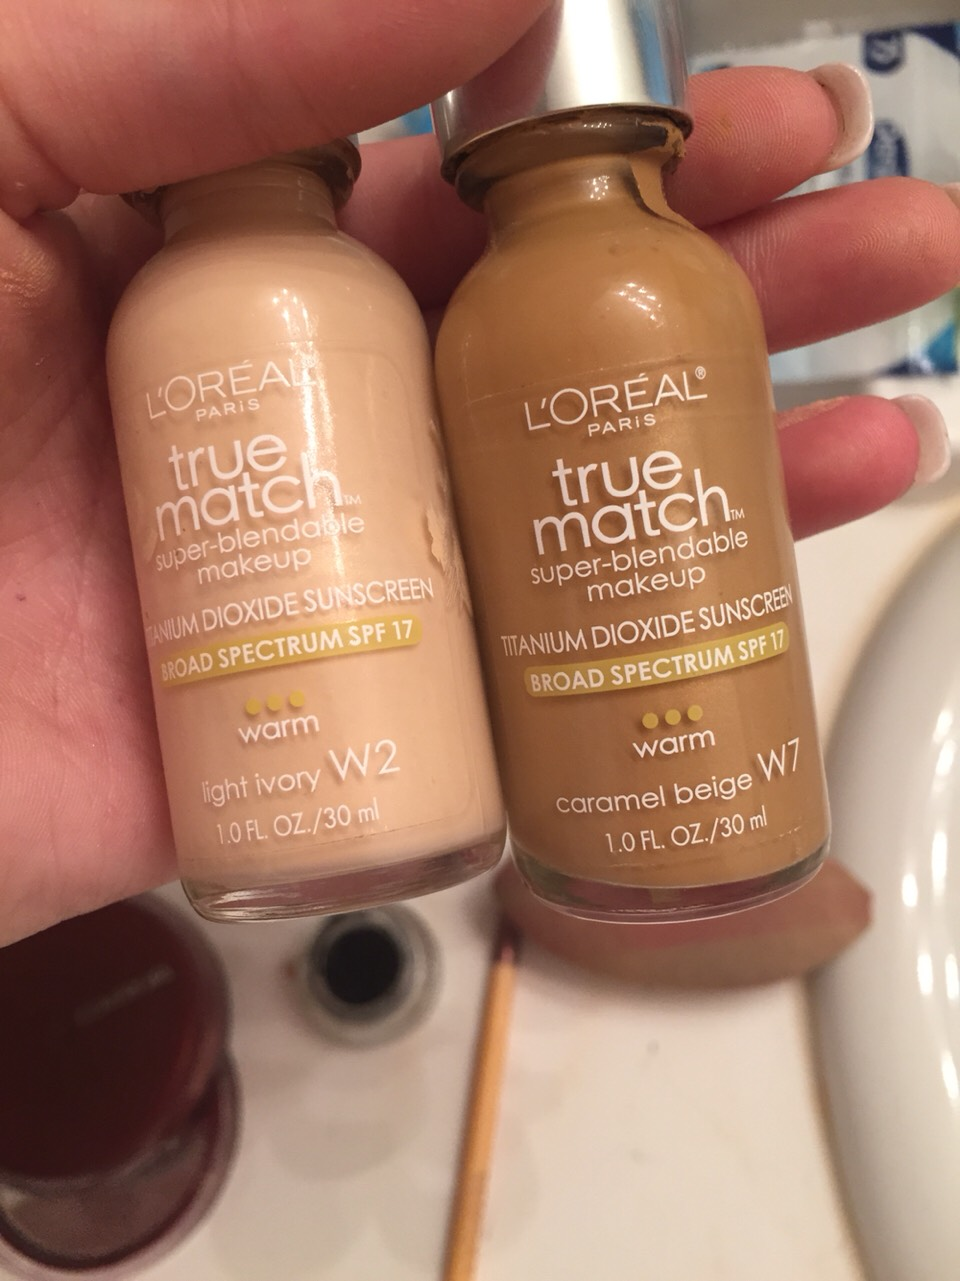 A make up way lighter than your skin tone (highlight) and one significantly darker (contour)